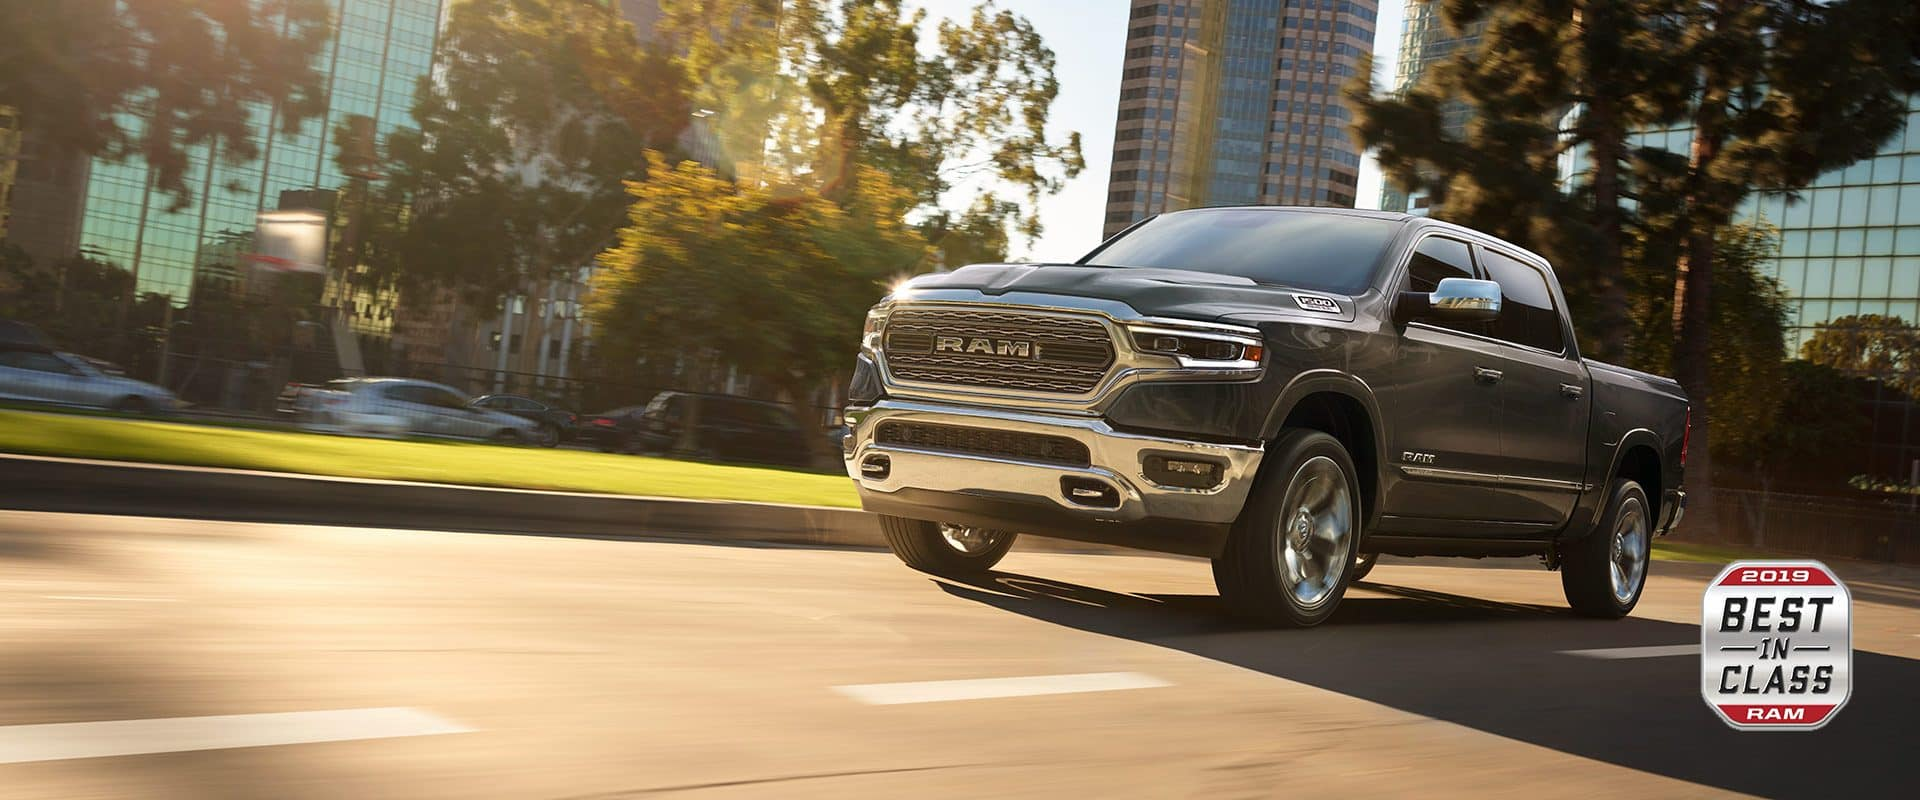 2019 Ram 1500 Best-In-Class Available V8 4x4 Fuel Economy